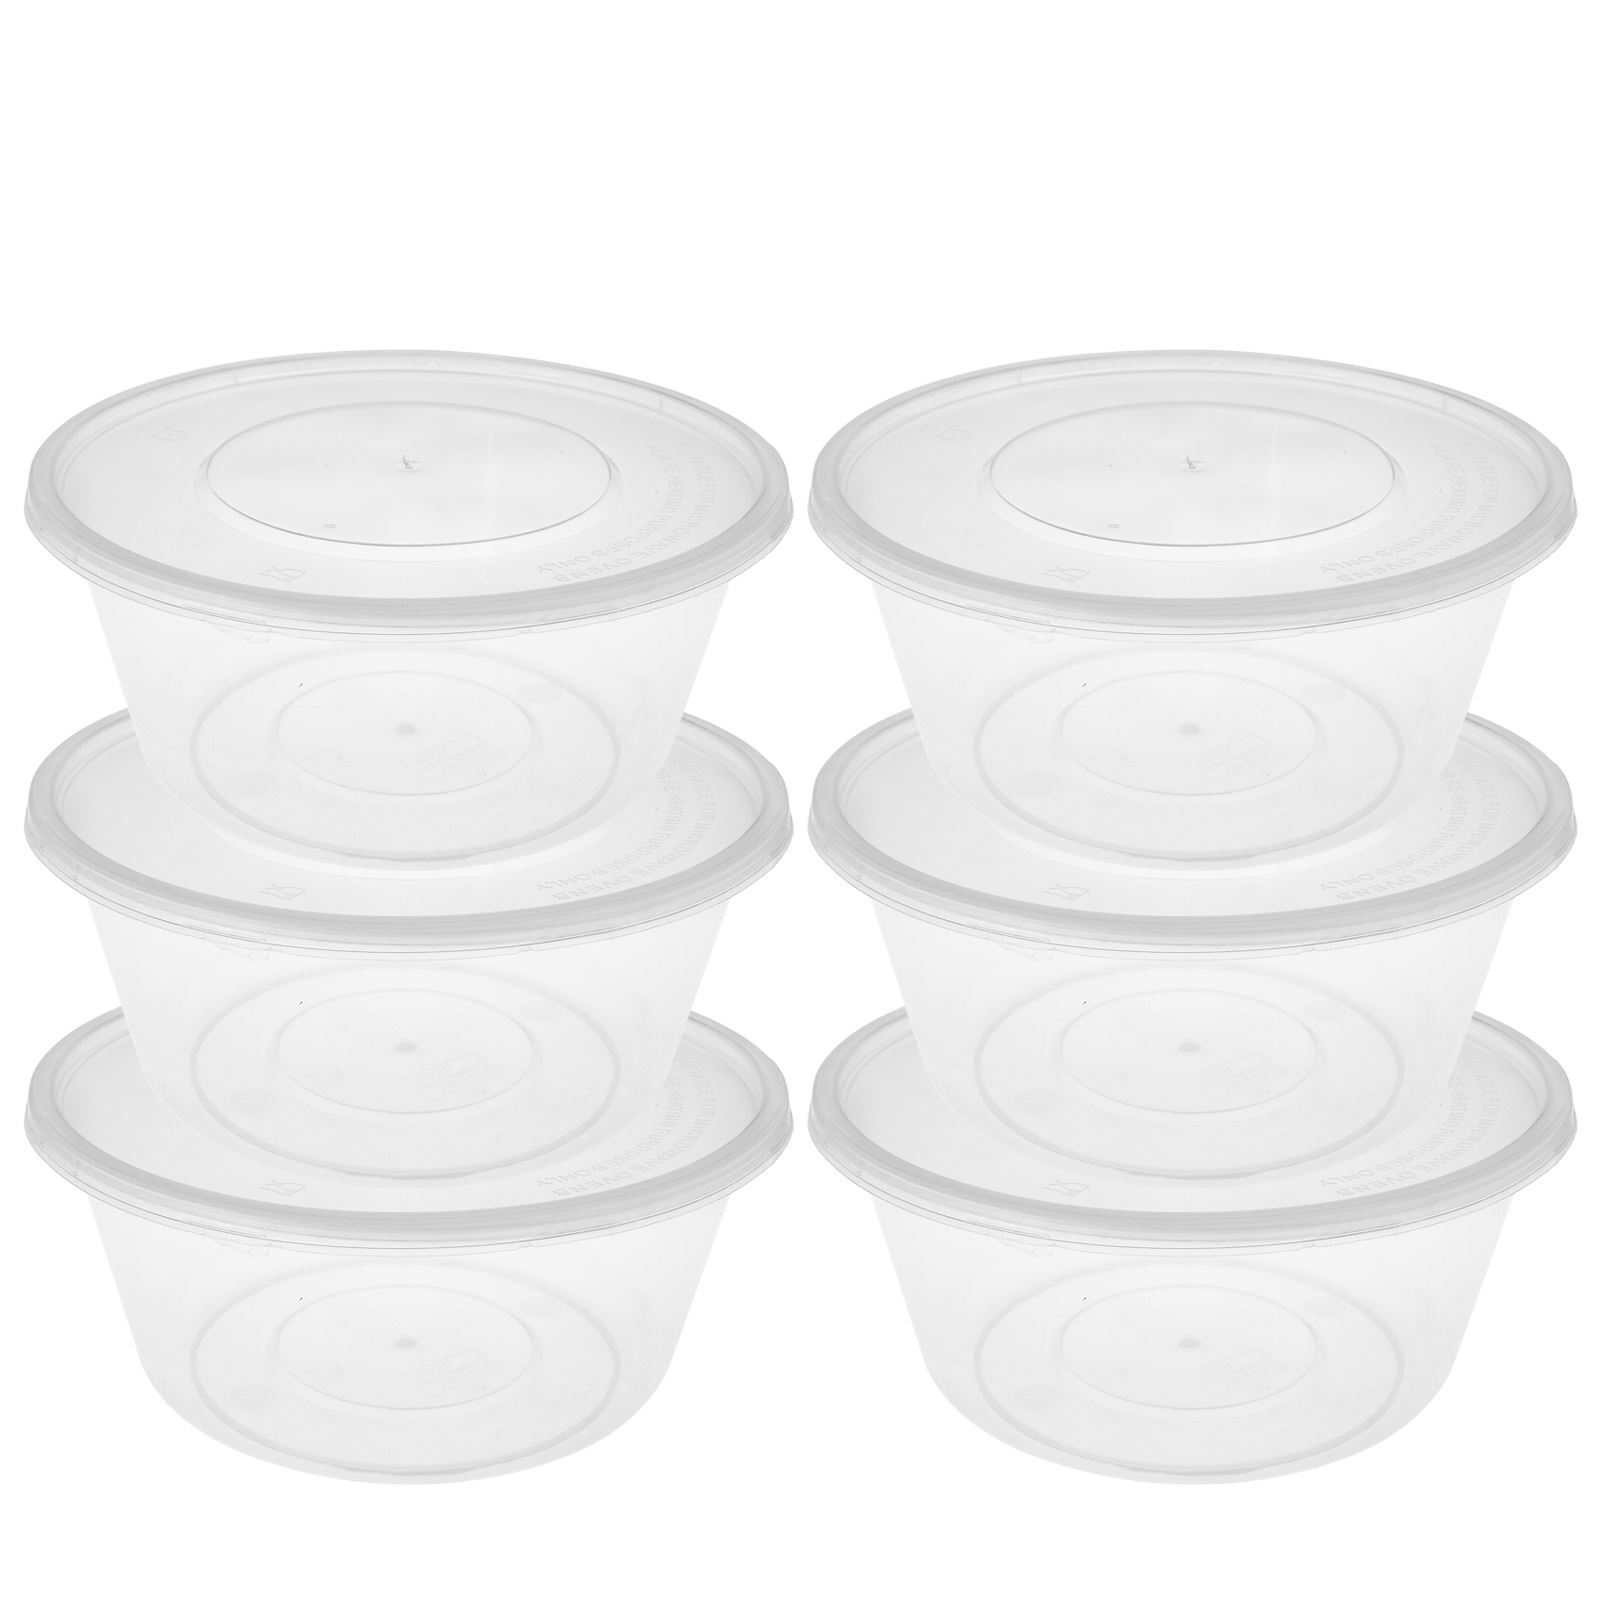 Plastic Containers With Lids Small Clear Plastic Food Storage Containers With Lids Meal